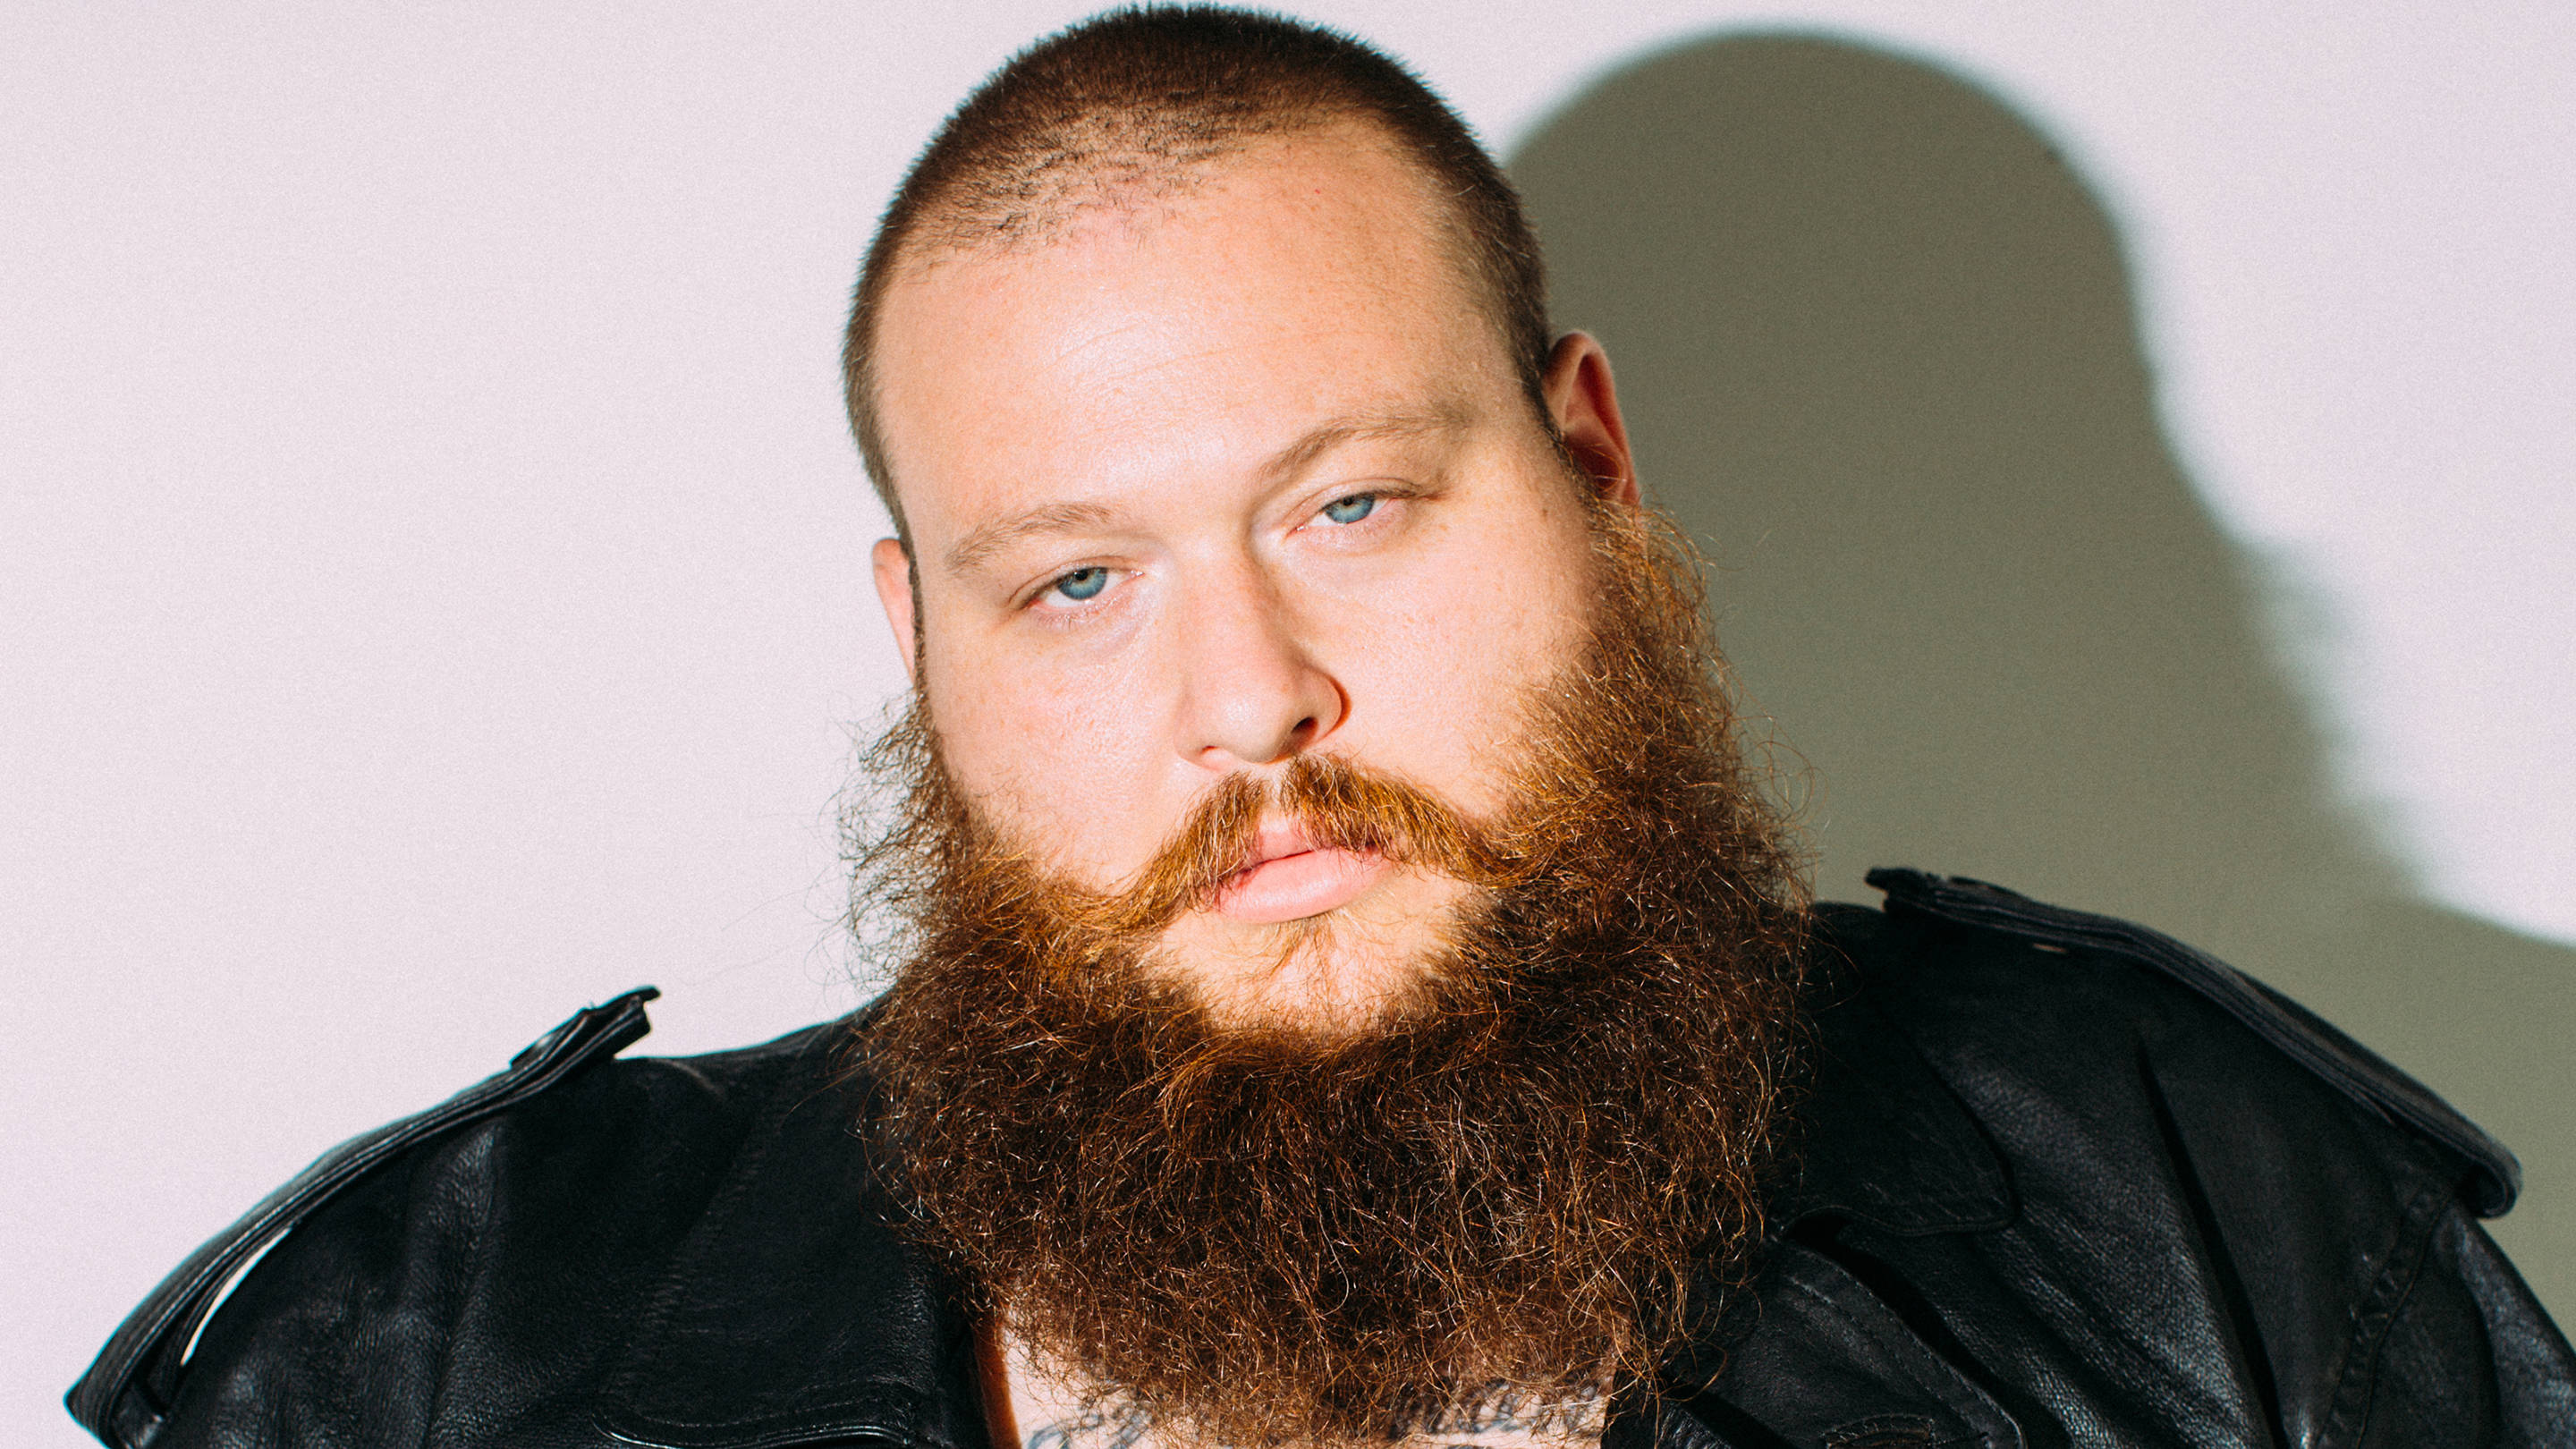 Action bronson playboy